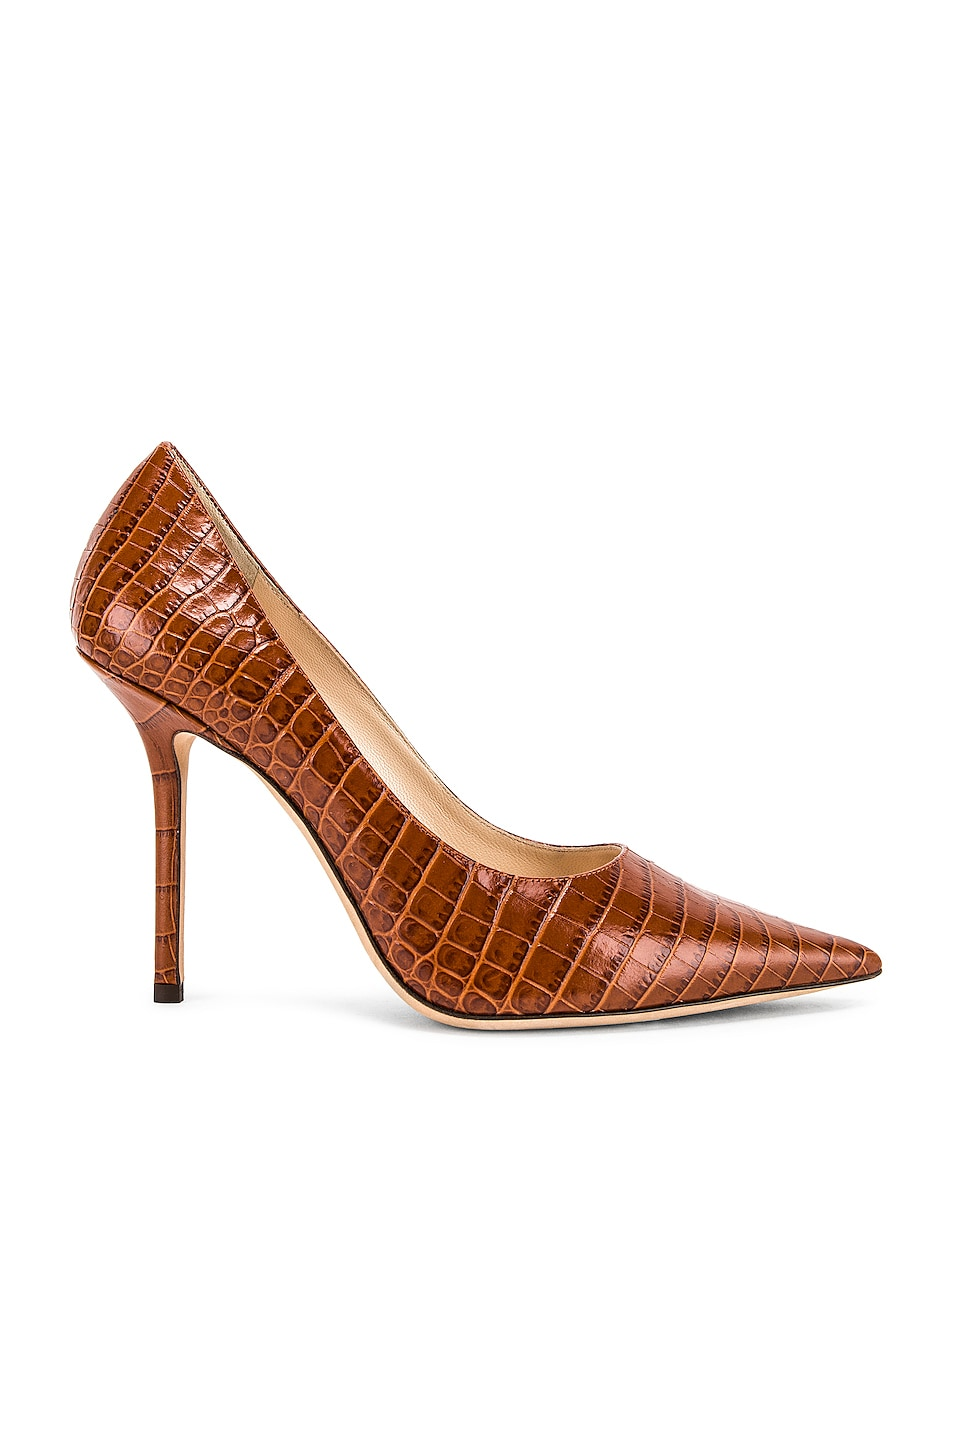 Image 1 of Jimmy Choo Croc Embossed Love 100 Heel in Cuoio